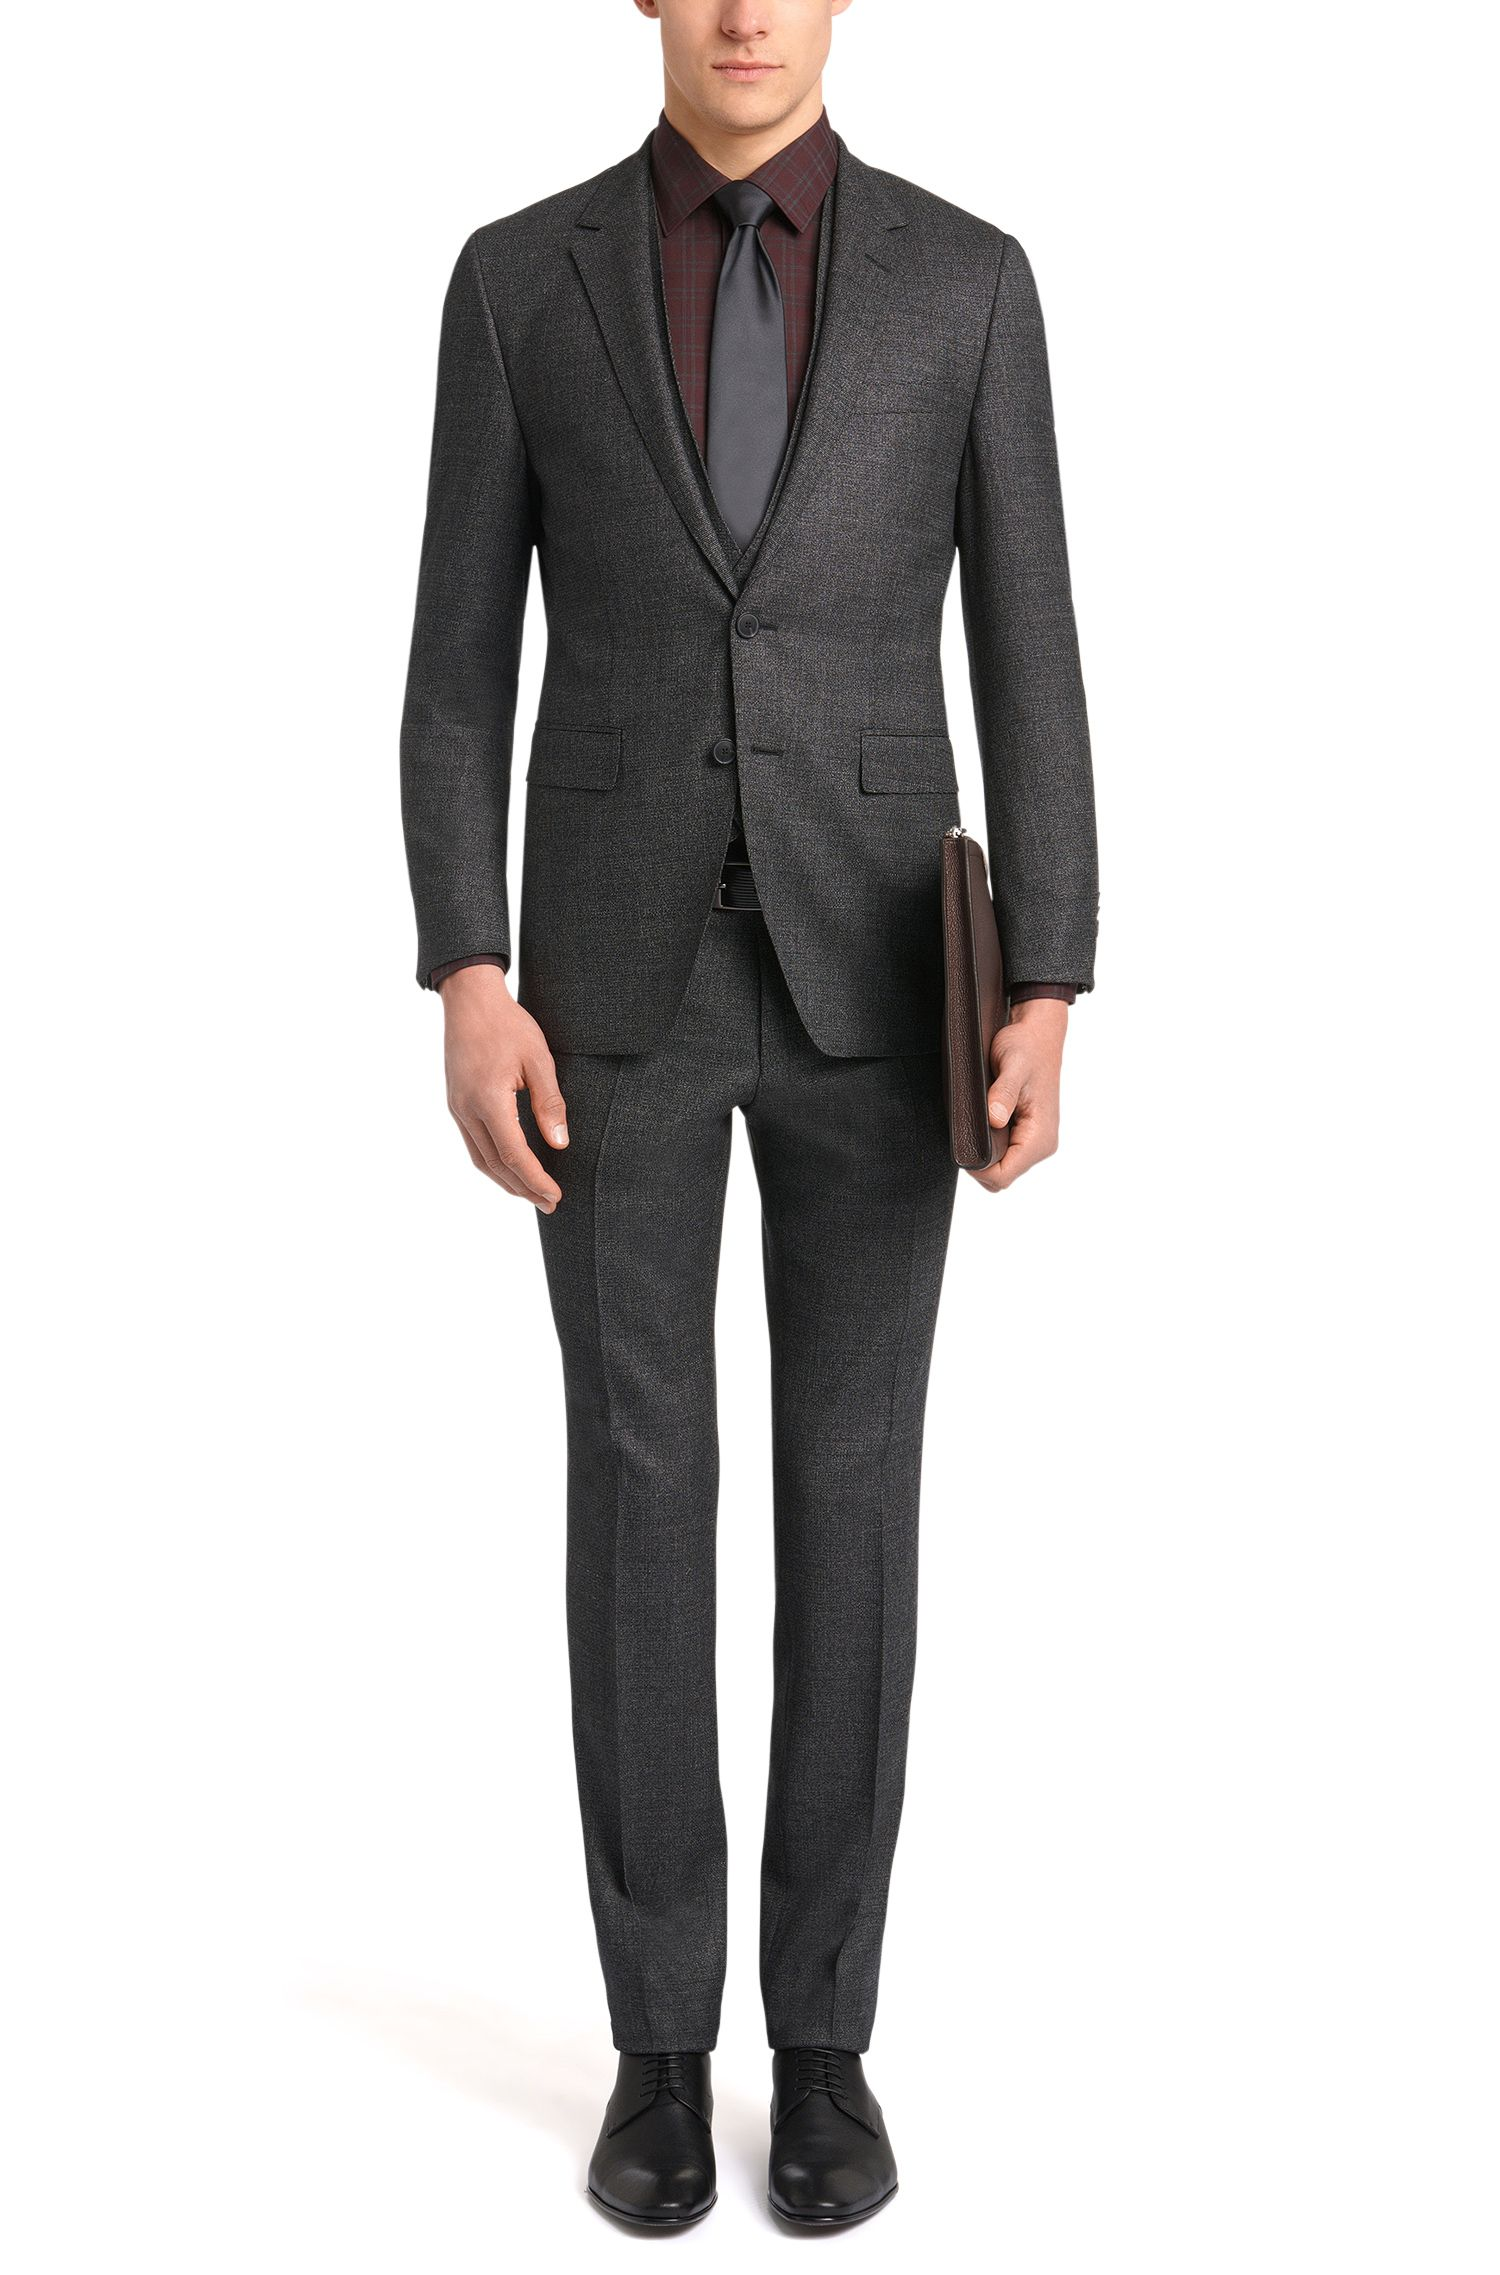 Kartiertes Slim-Fit Tailored-Hemd aus Baumwolle: 'T-Scott'